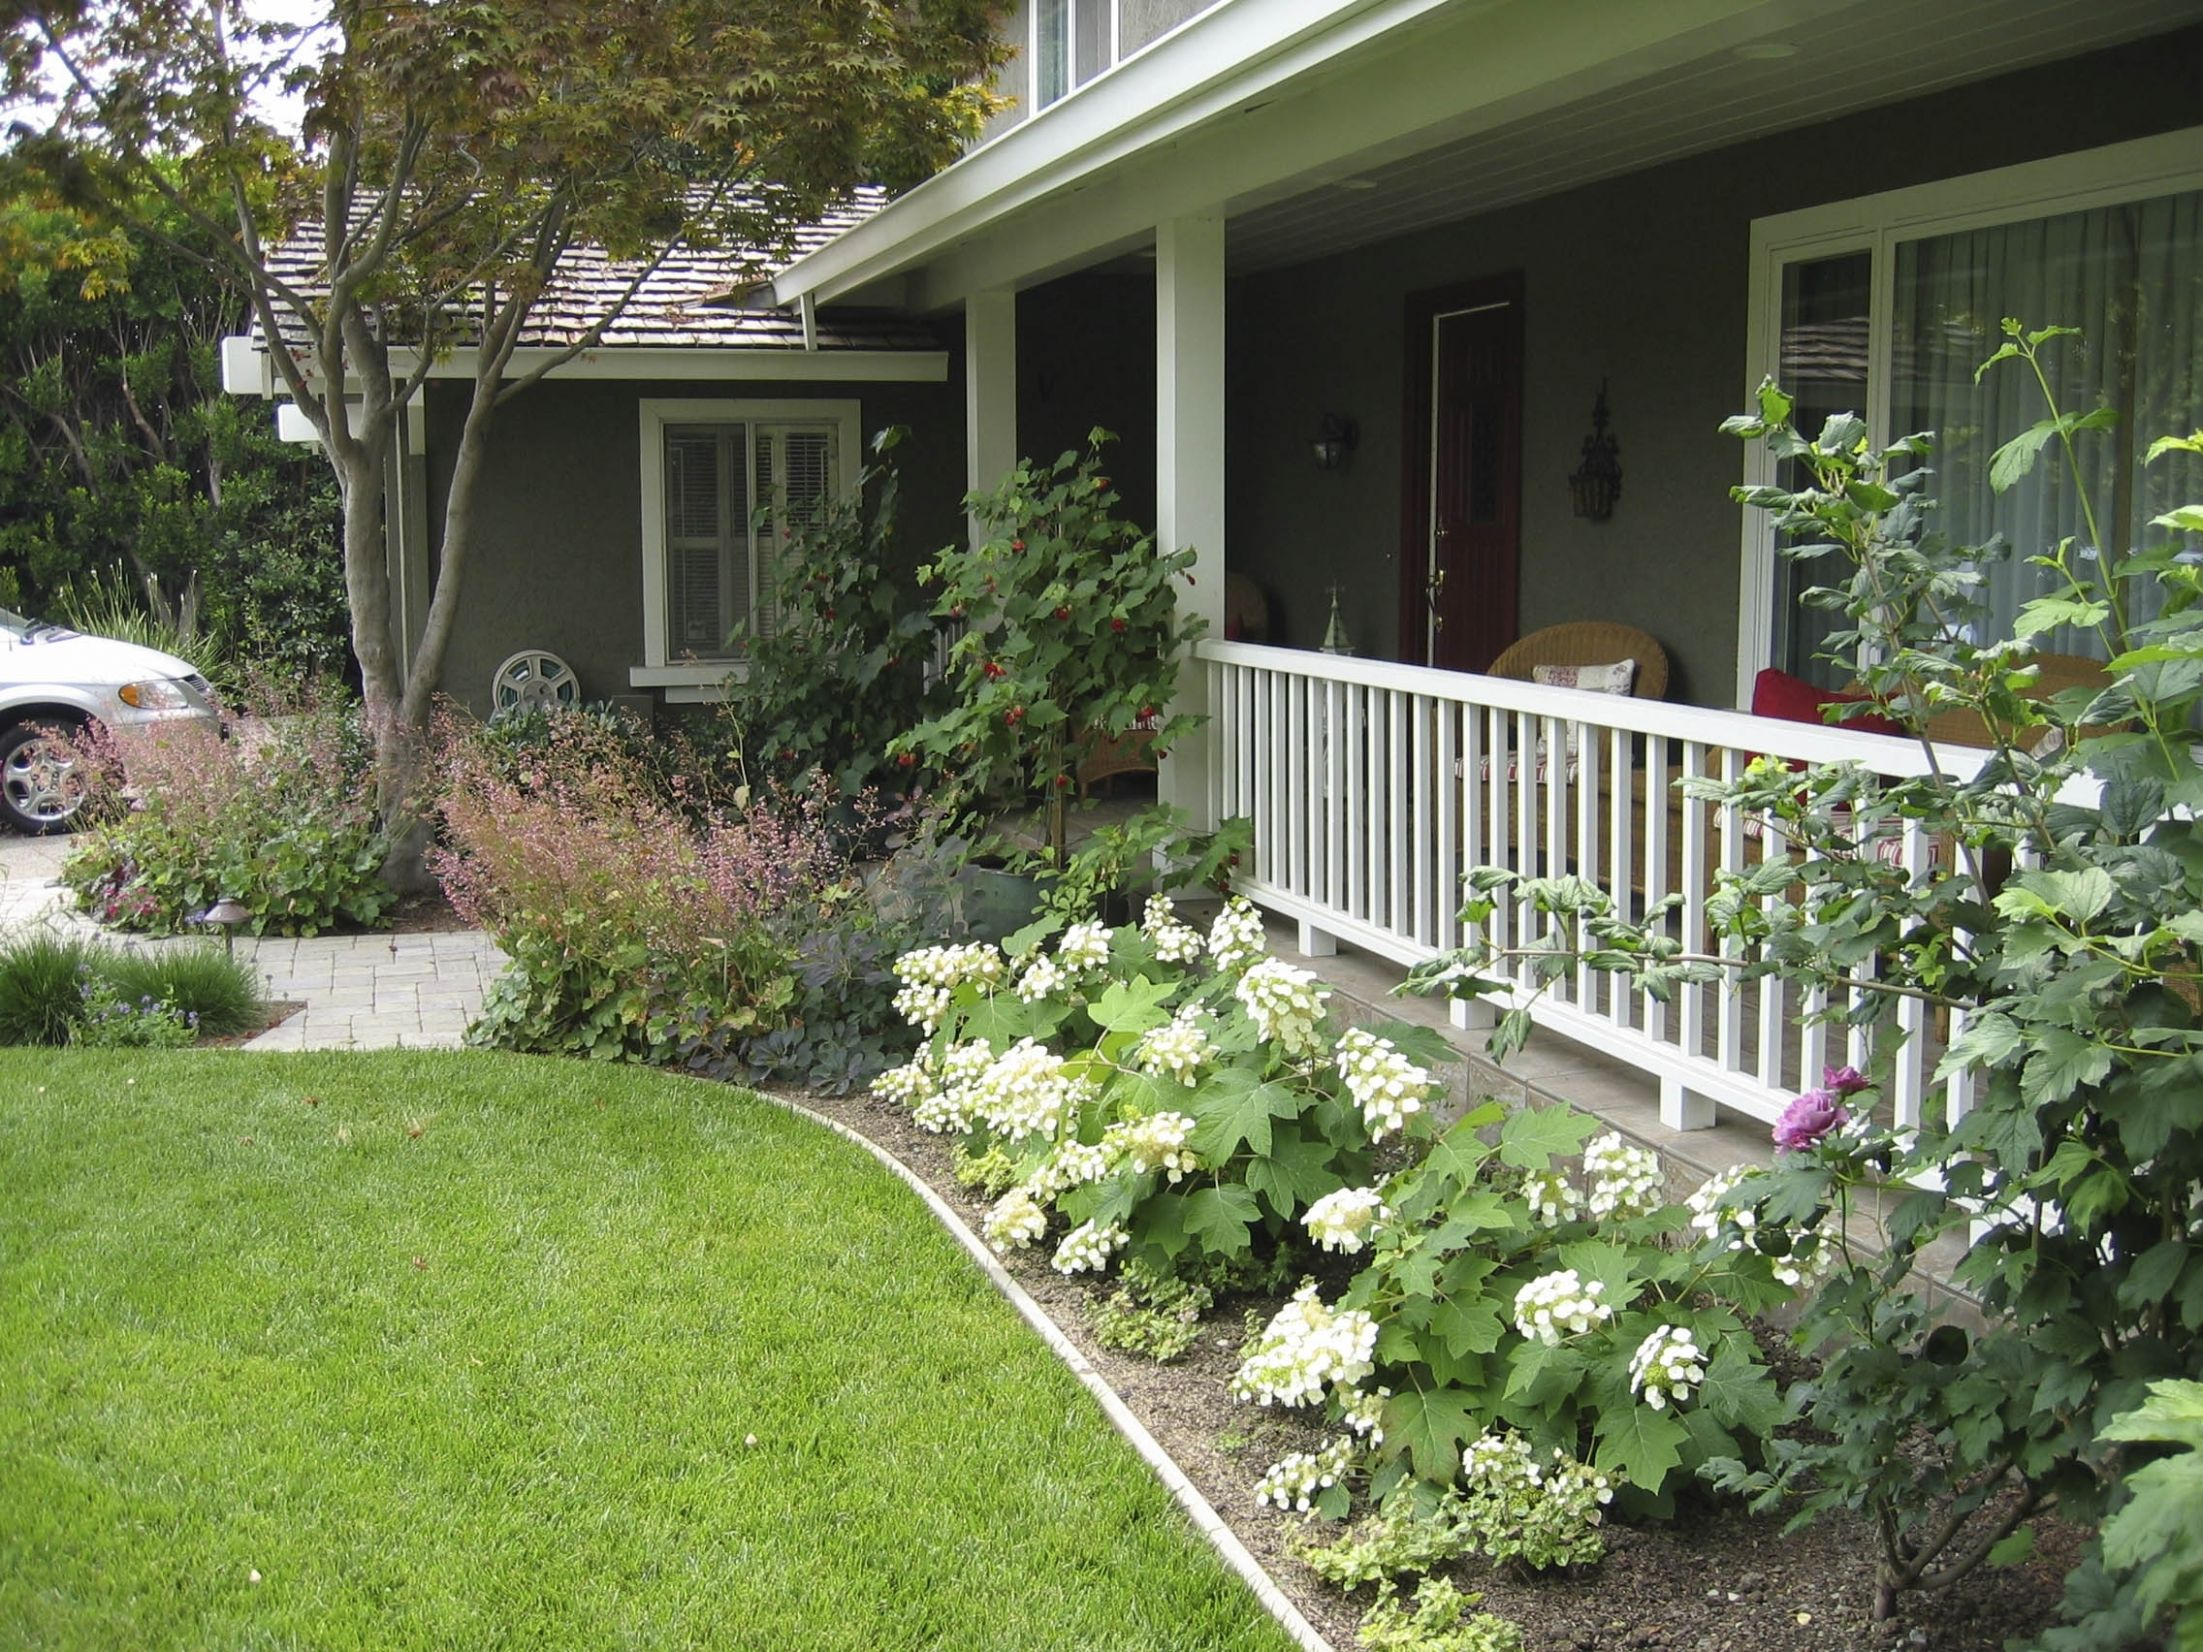 Planting Ideas For Front Porch